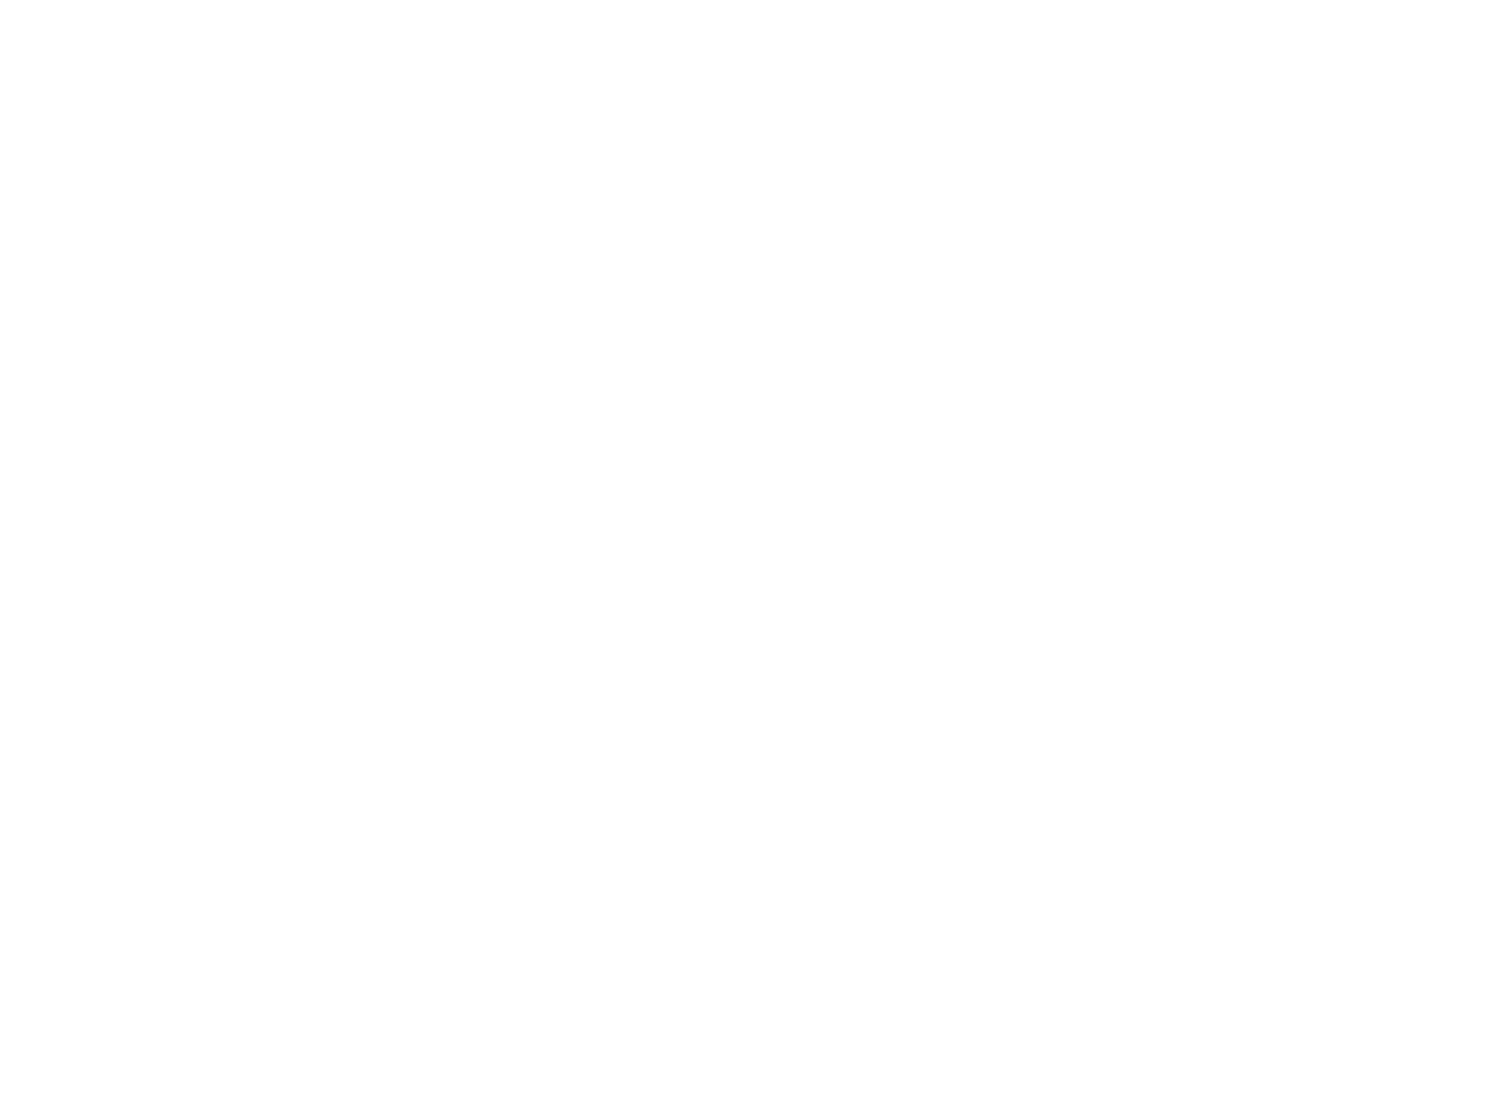 The Lunar Laugh